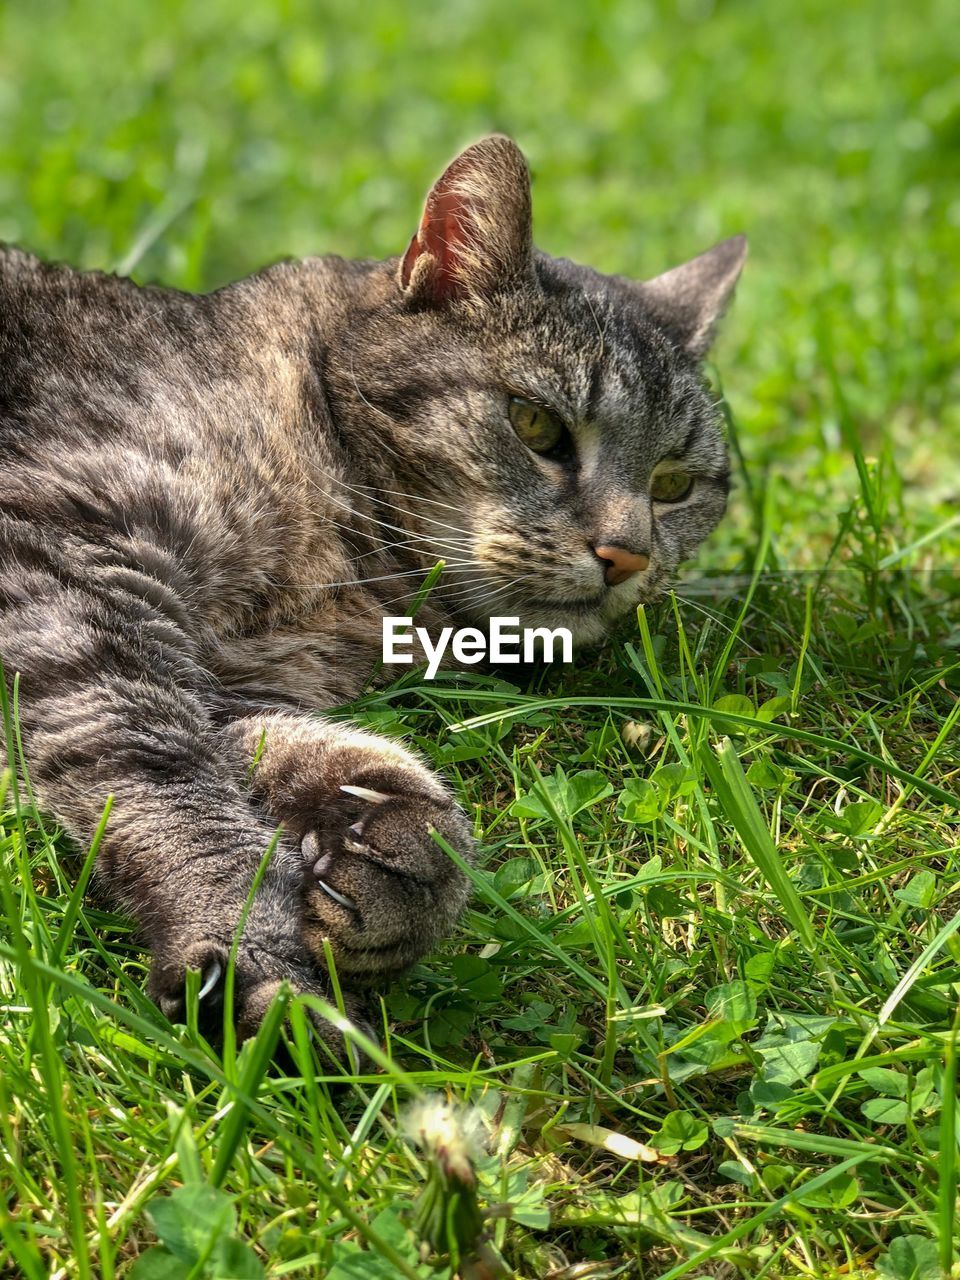 animal themes, animal, mammal, grass, group of animals, cat, plant, vertebrate, feline, two animals, domestic cat, young animal, no people, domestic animals, nature, domestic, pets, green color, day, relaxation, animal family, kitten, whisker